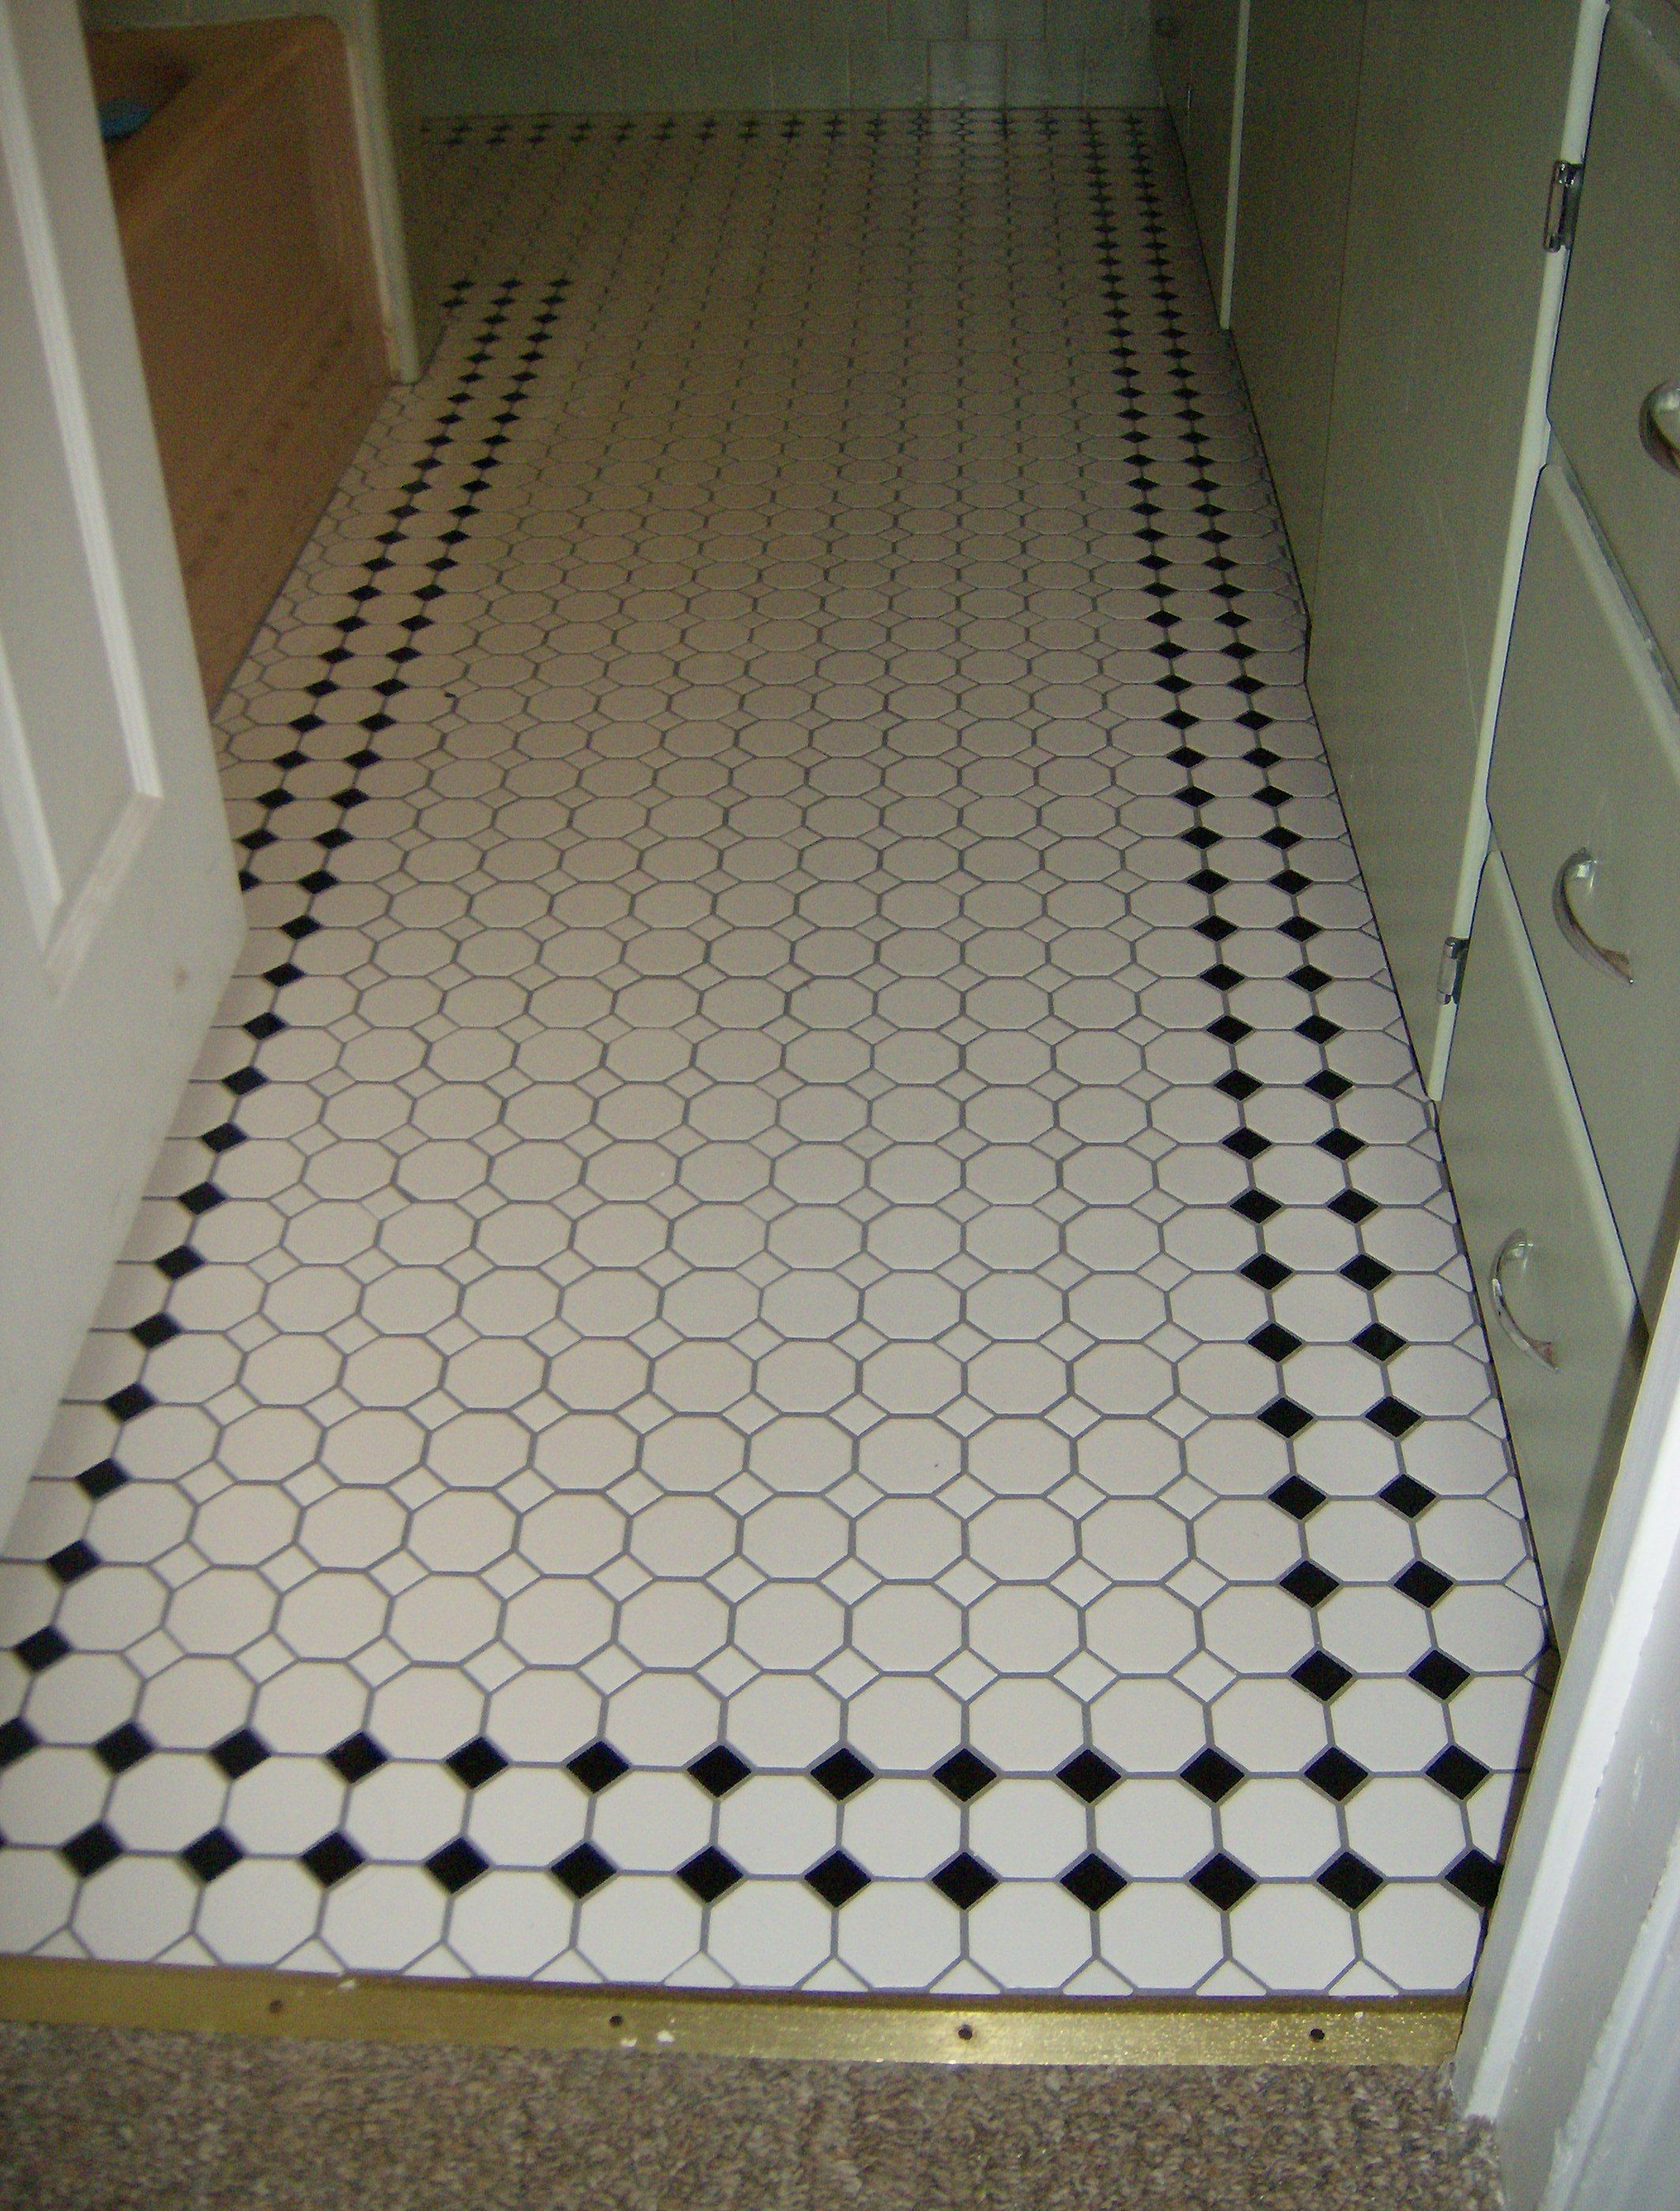 Frugal floor tile patterns for small spaces and tile floor pattern frugal floor tile patterns for small spaces and tile floor pattern calculations house pinterest floor tile patterns tile floor patterns and tile dailygadgetfo Images